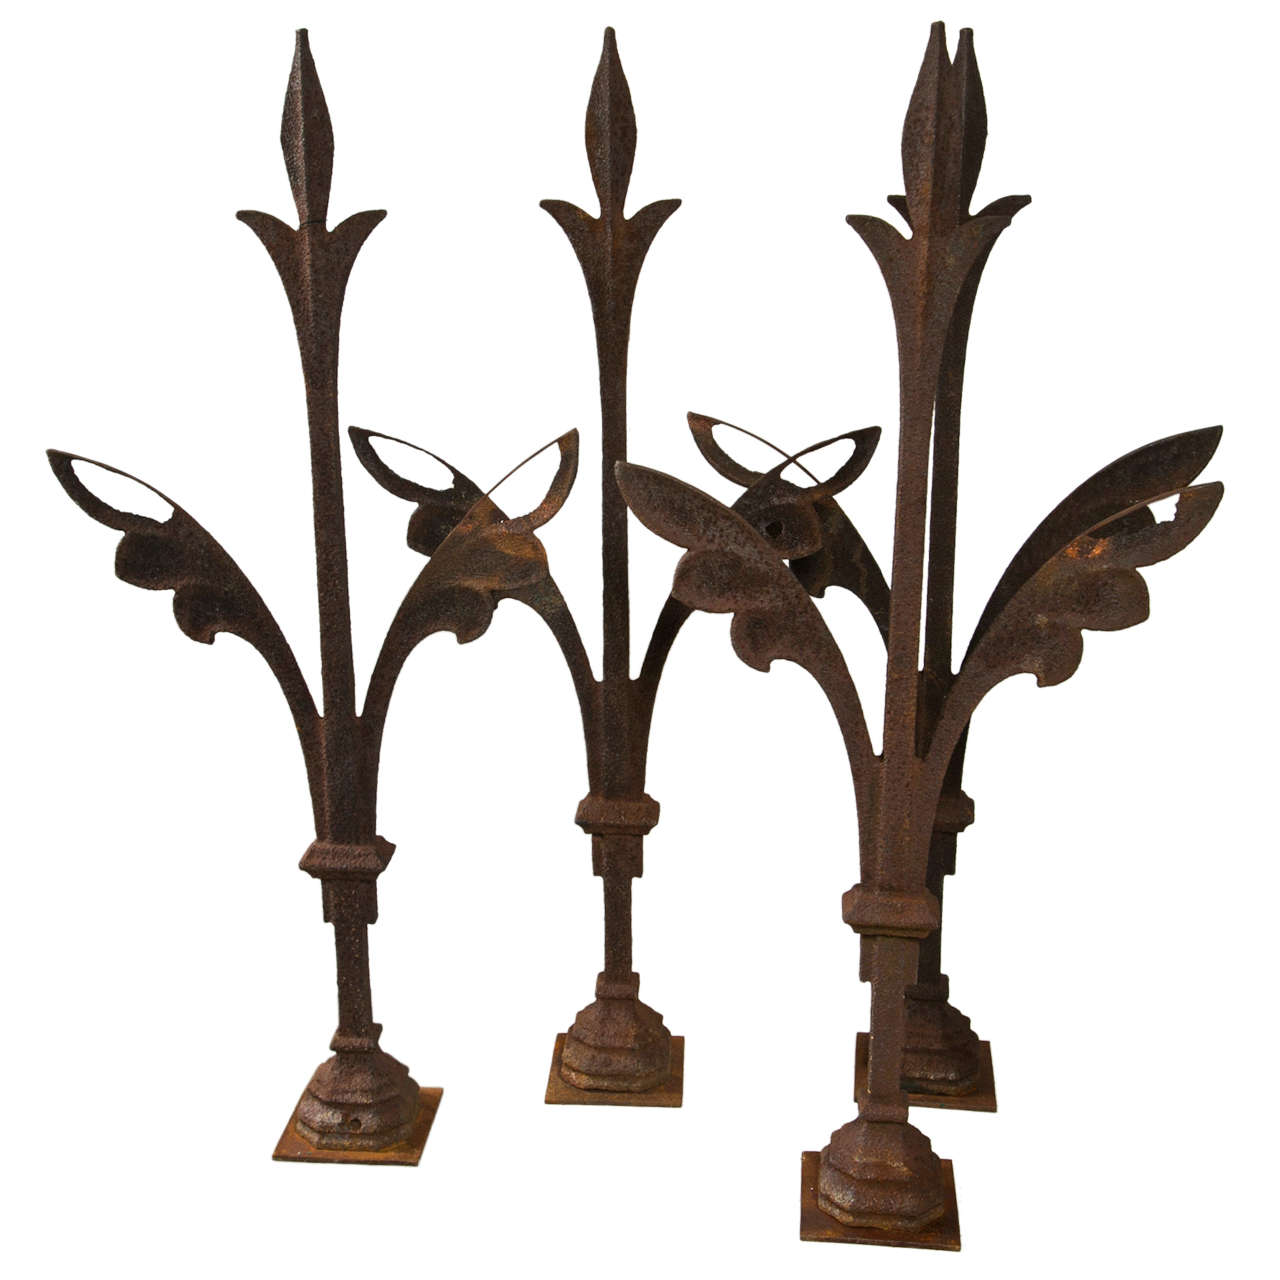 Victorian Garden Finials For Sale at 1stdibs